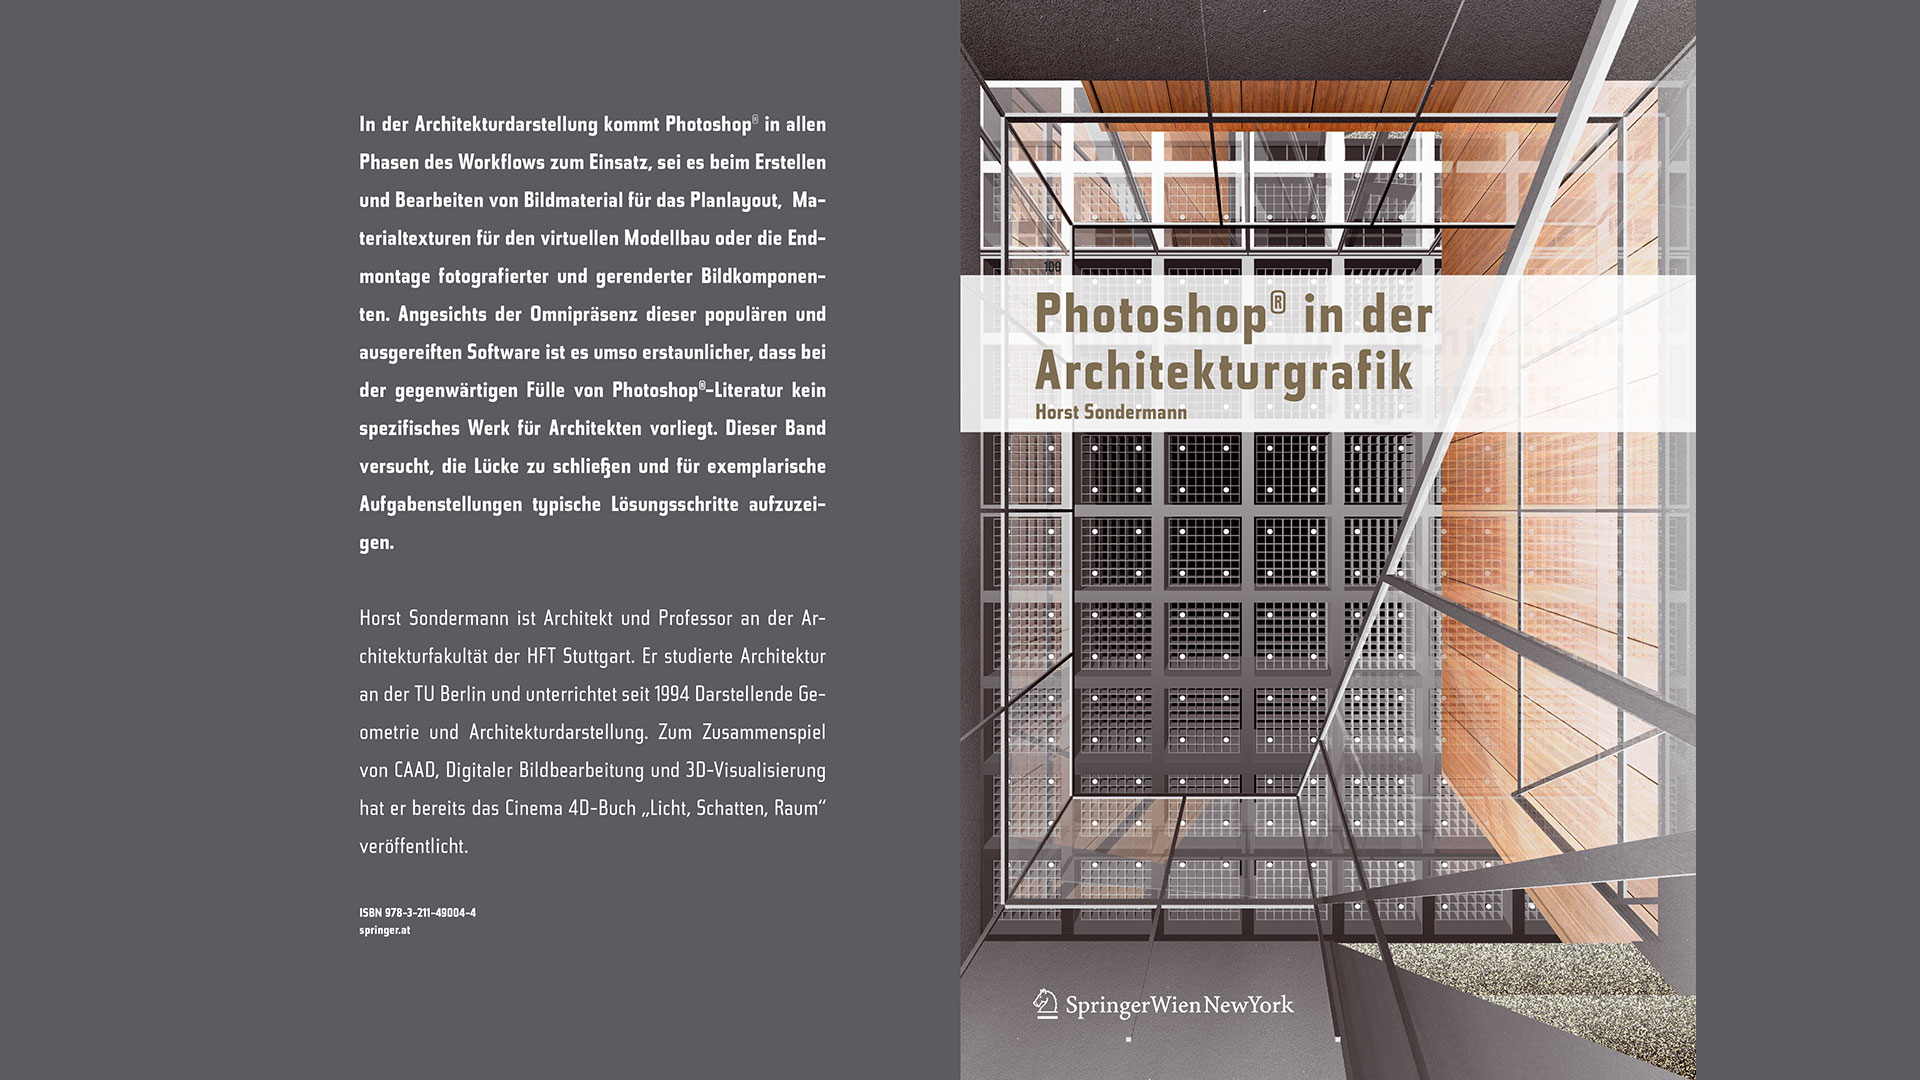 Photoshop in der Architekturgrafik